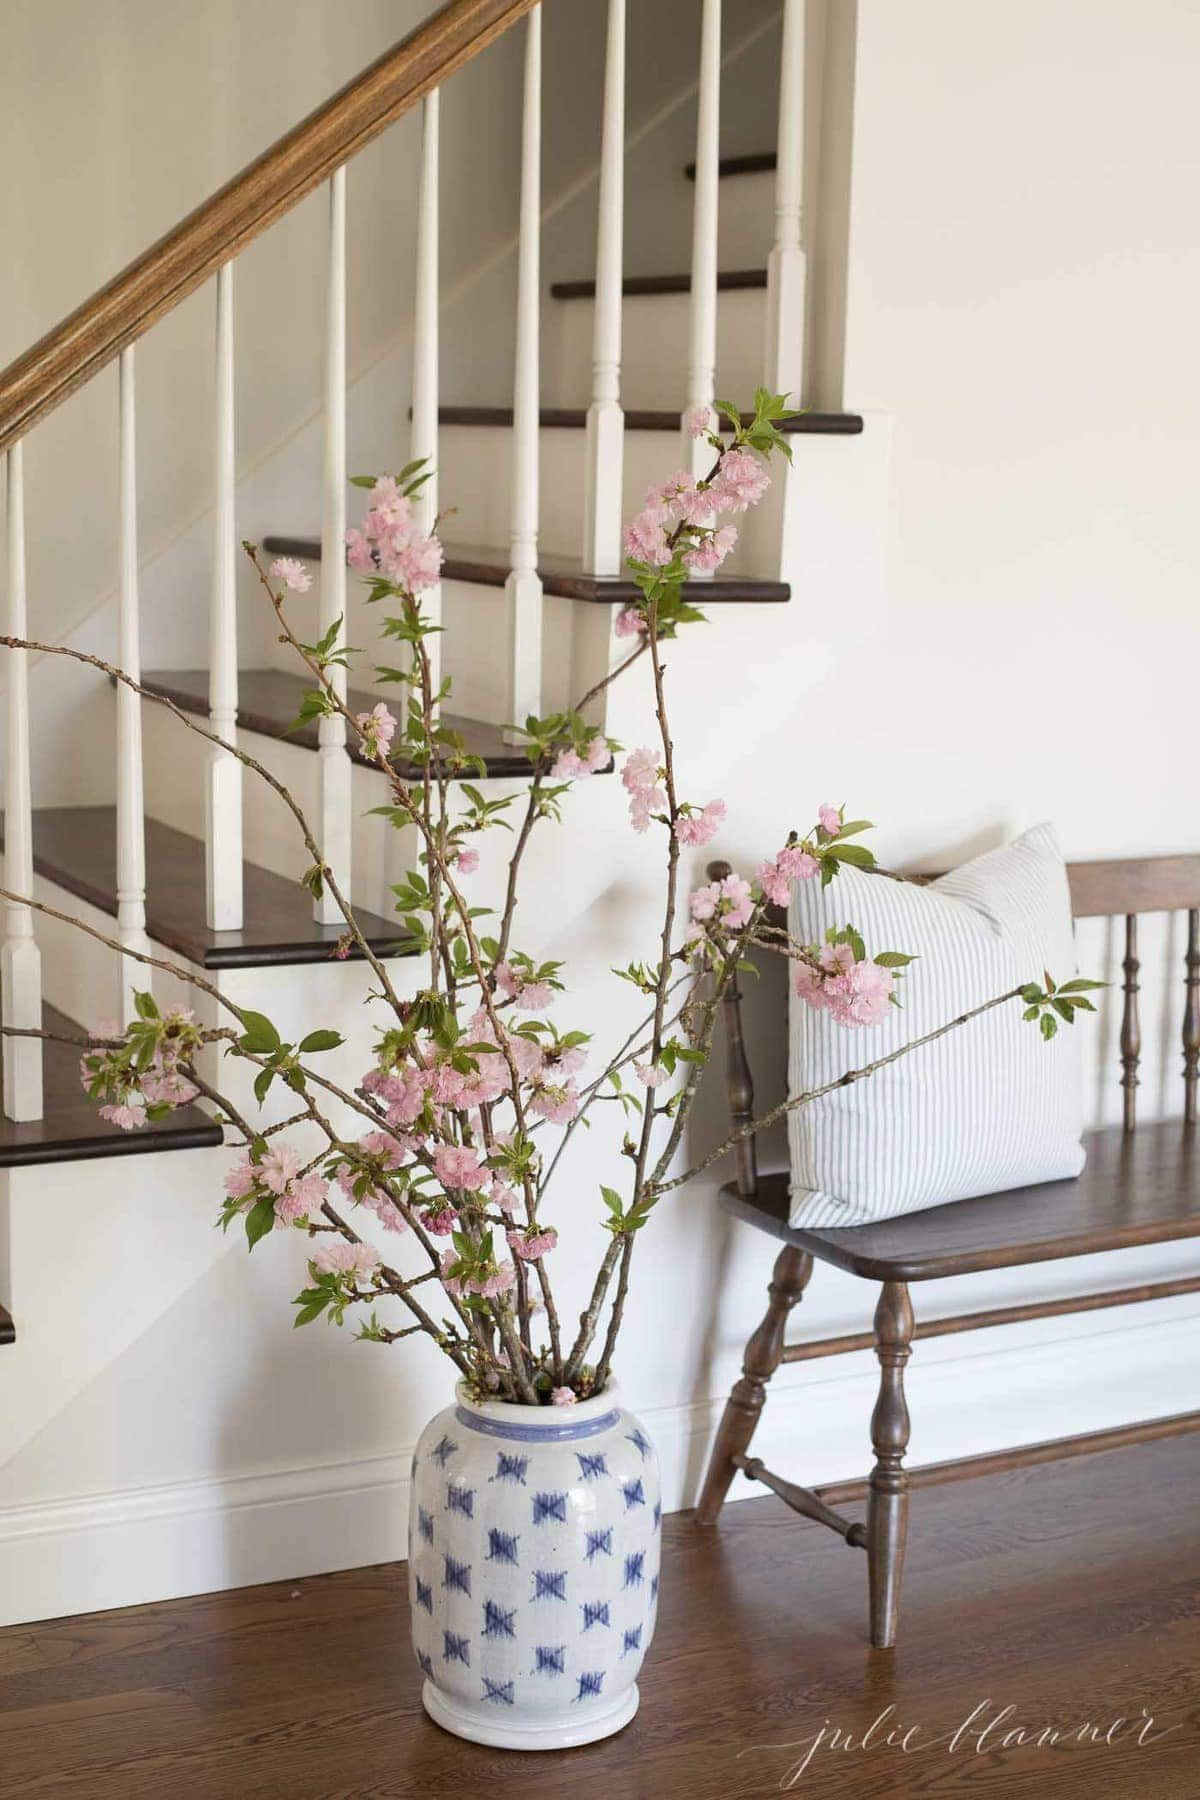 cherry blossom branches in blue and white patterned vase